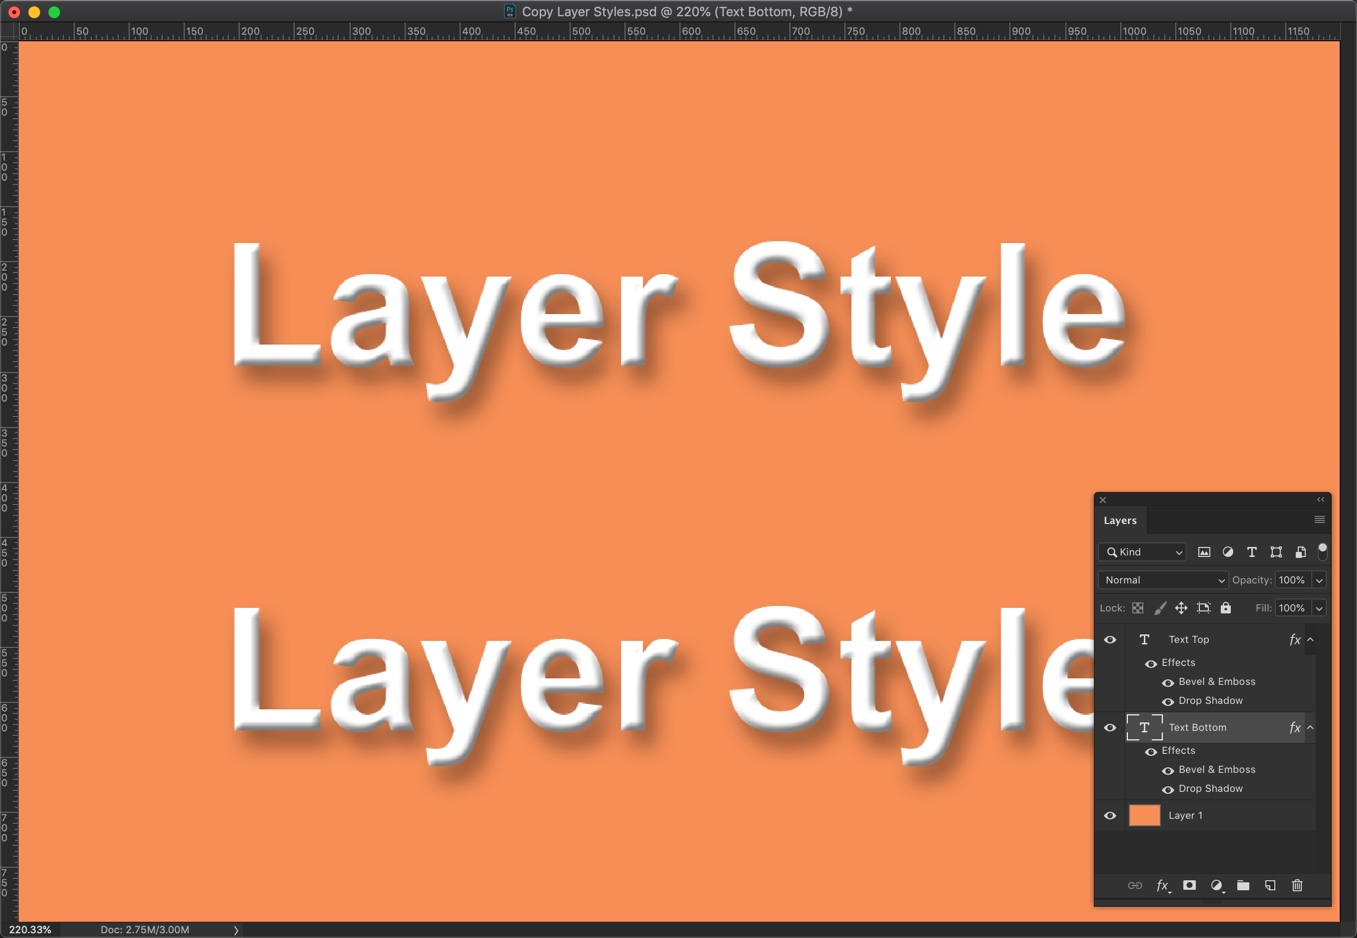 8-2 - Quick Tip: Copy Layer Styles in Photoshop